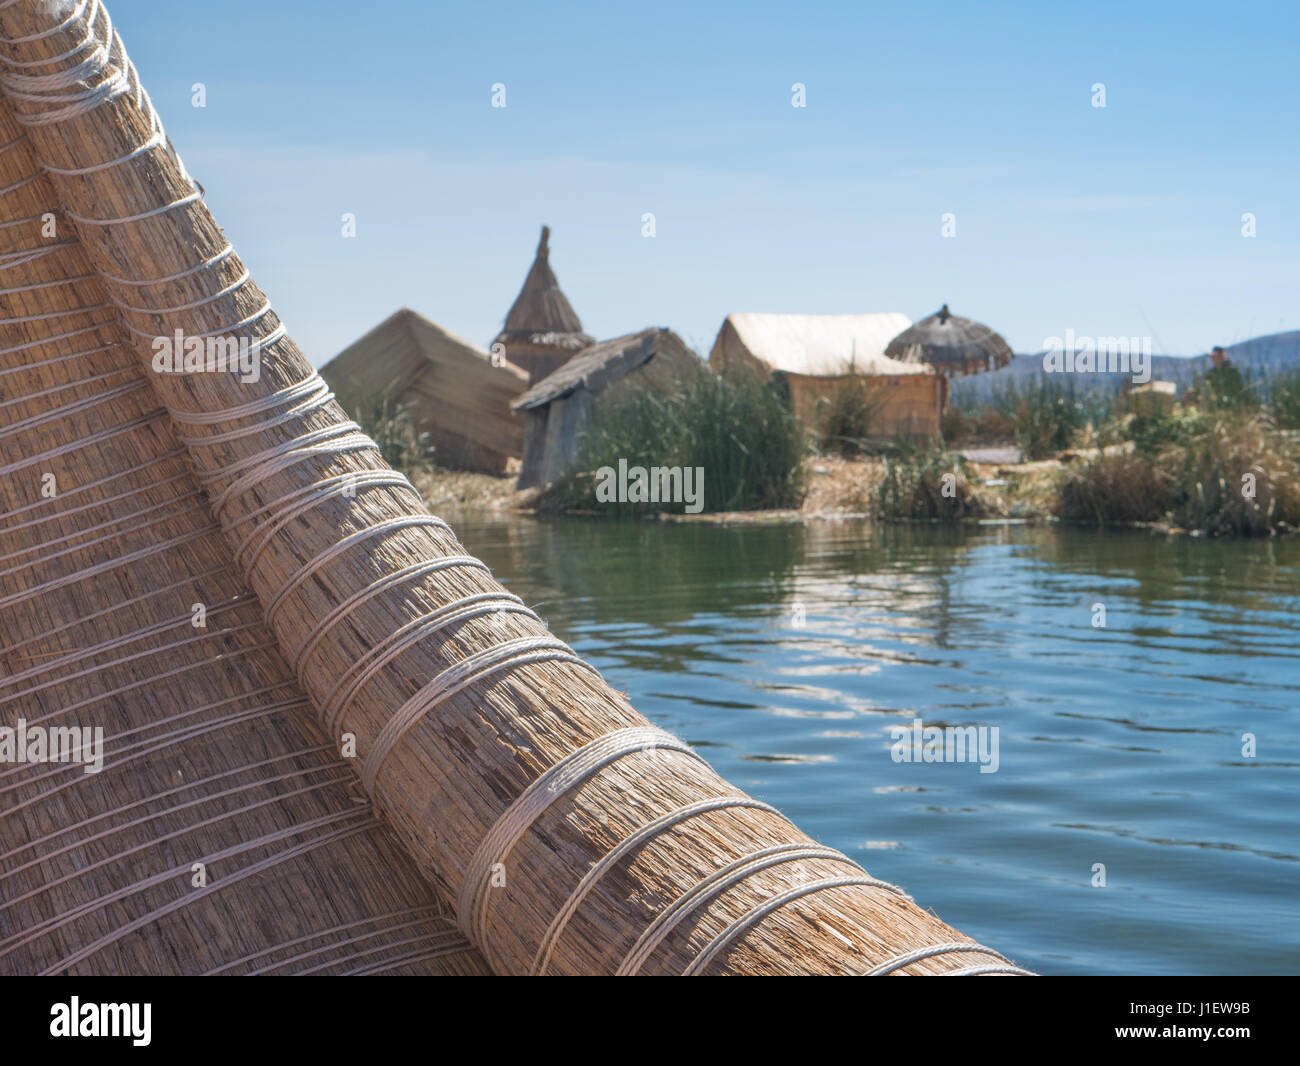 View of the Uros floating reed islands with boats, mysterious Lake Titicaca, Puno Region, Peru - Stock Image